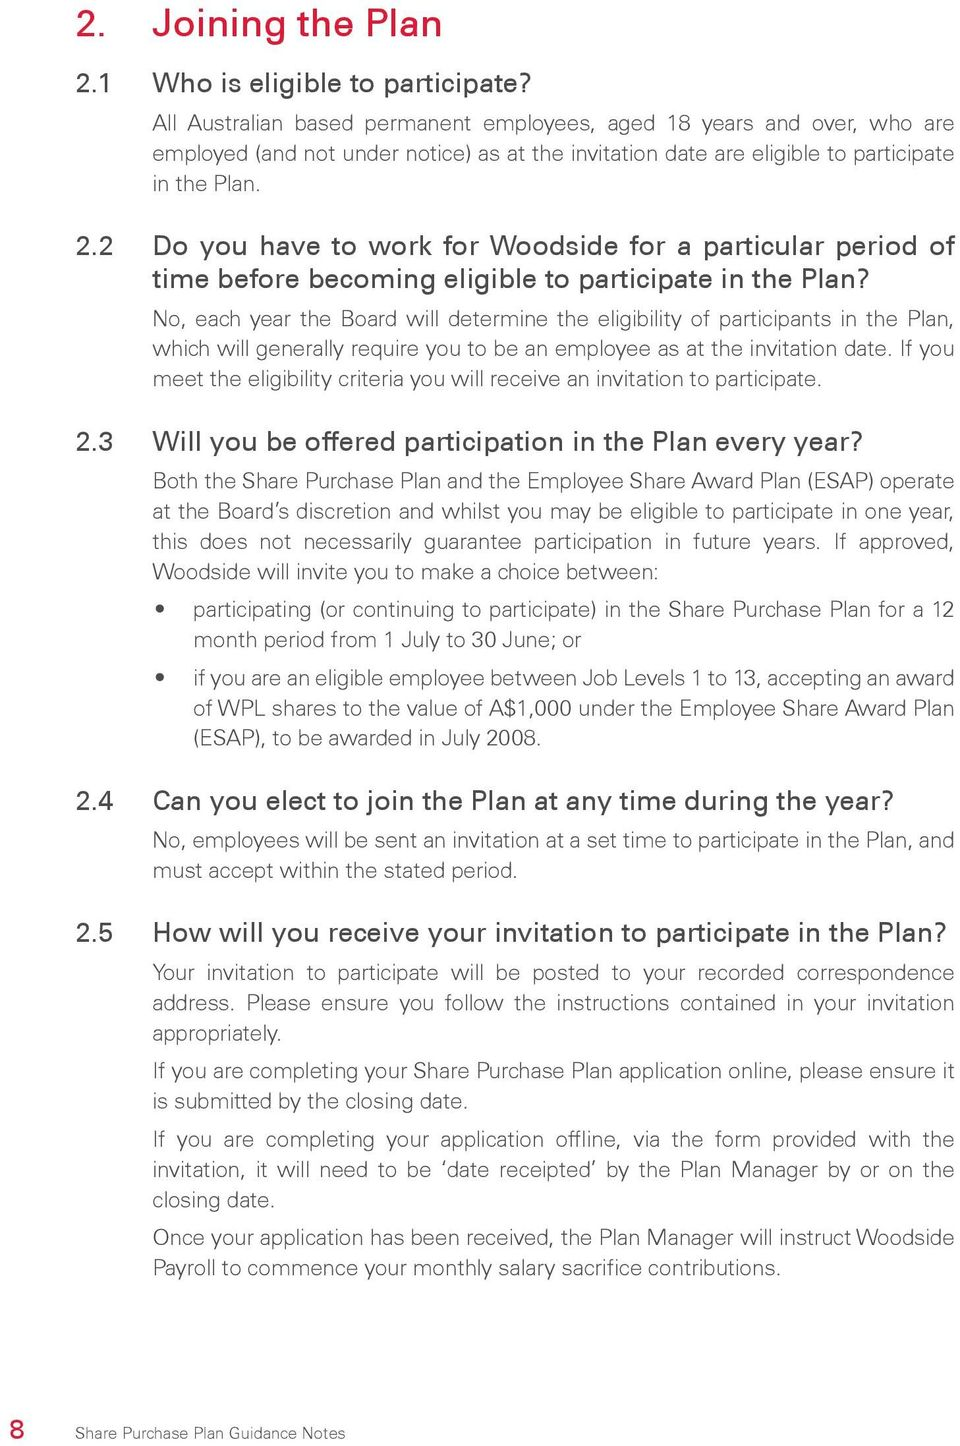 2 Do you have to work for Woodside for a particular period of time before becoming eligible to participate in the Plan?